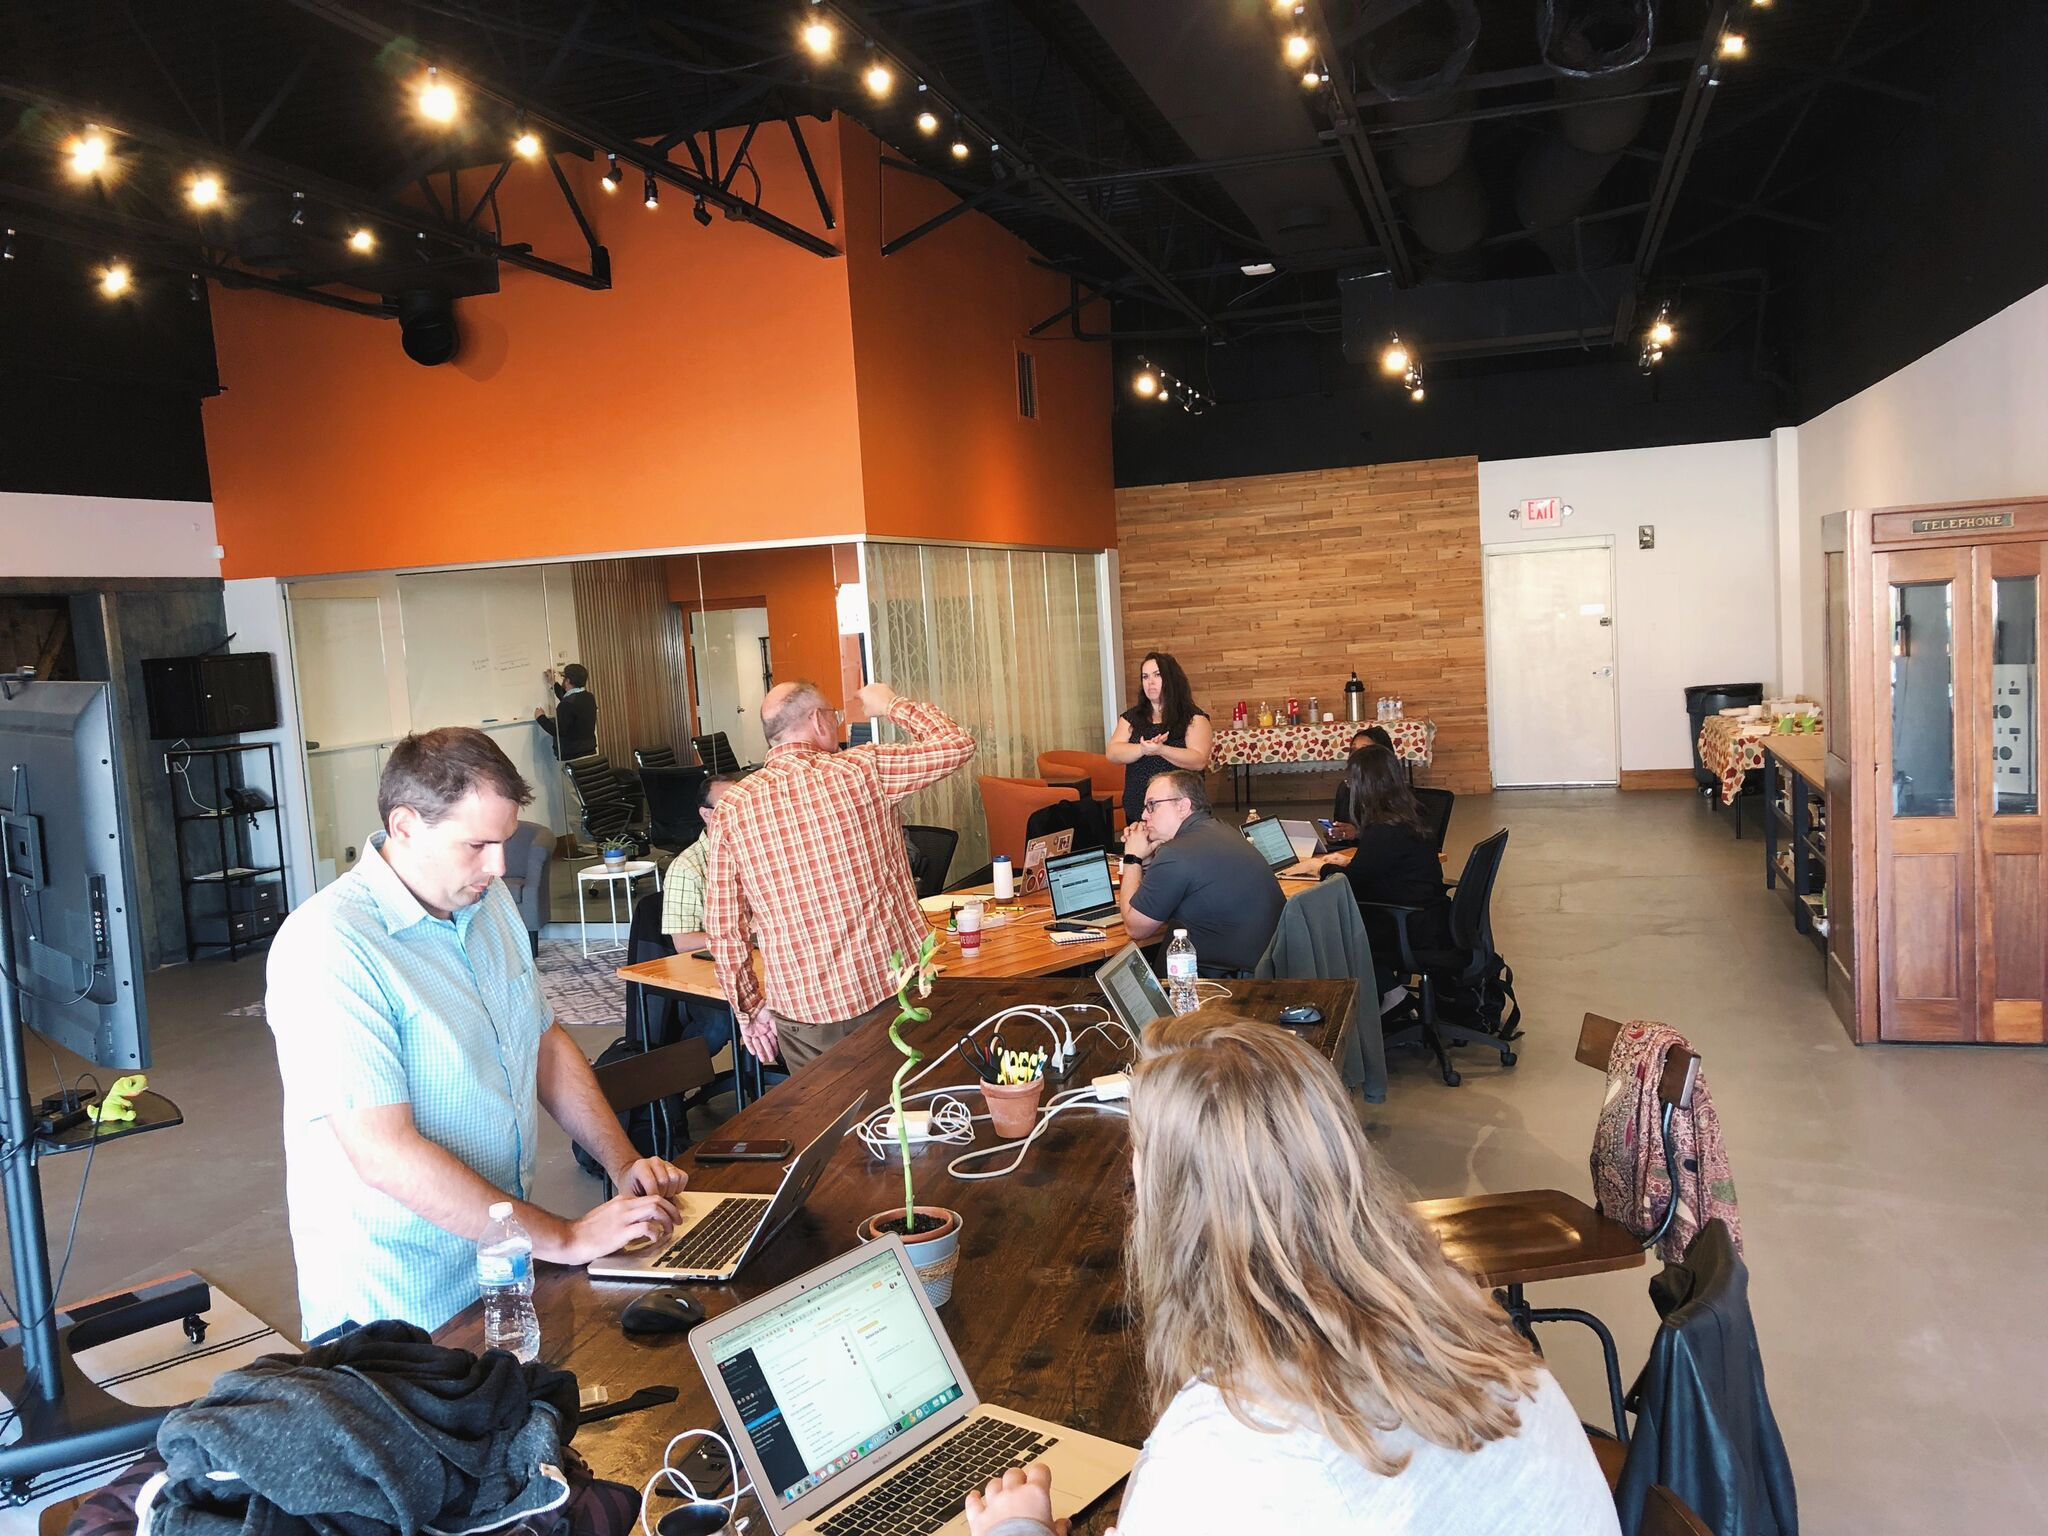 The Reclaim Hosting team at work